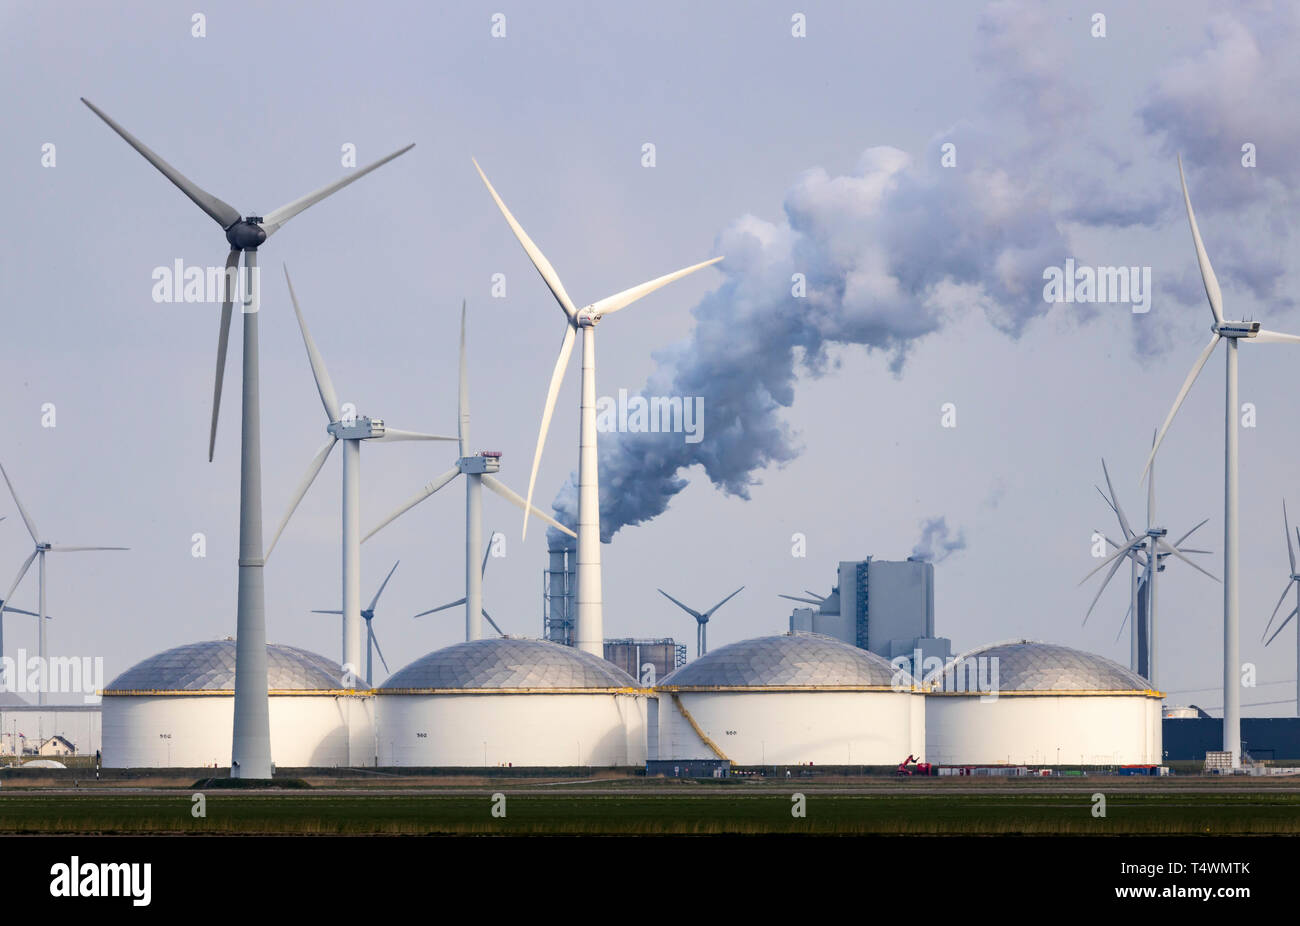 Eemshaven Energy Park, various power plants and the Westereems and Growind wind farms, a total of over 80 wind turbines, RWE Eemshaven coal-fired powe - Stock Image